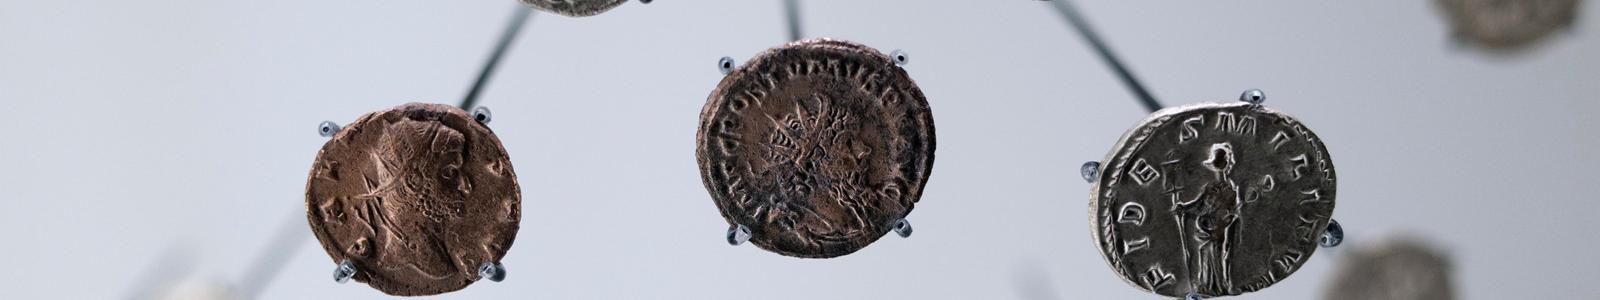 Coin, penny, part of a hoard found by metal detector at Portsdown Hill, near Portchester, Fareham, Hampshire, 1995, issued by Stephen, minted in a northern mint, 1135-1154